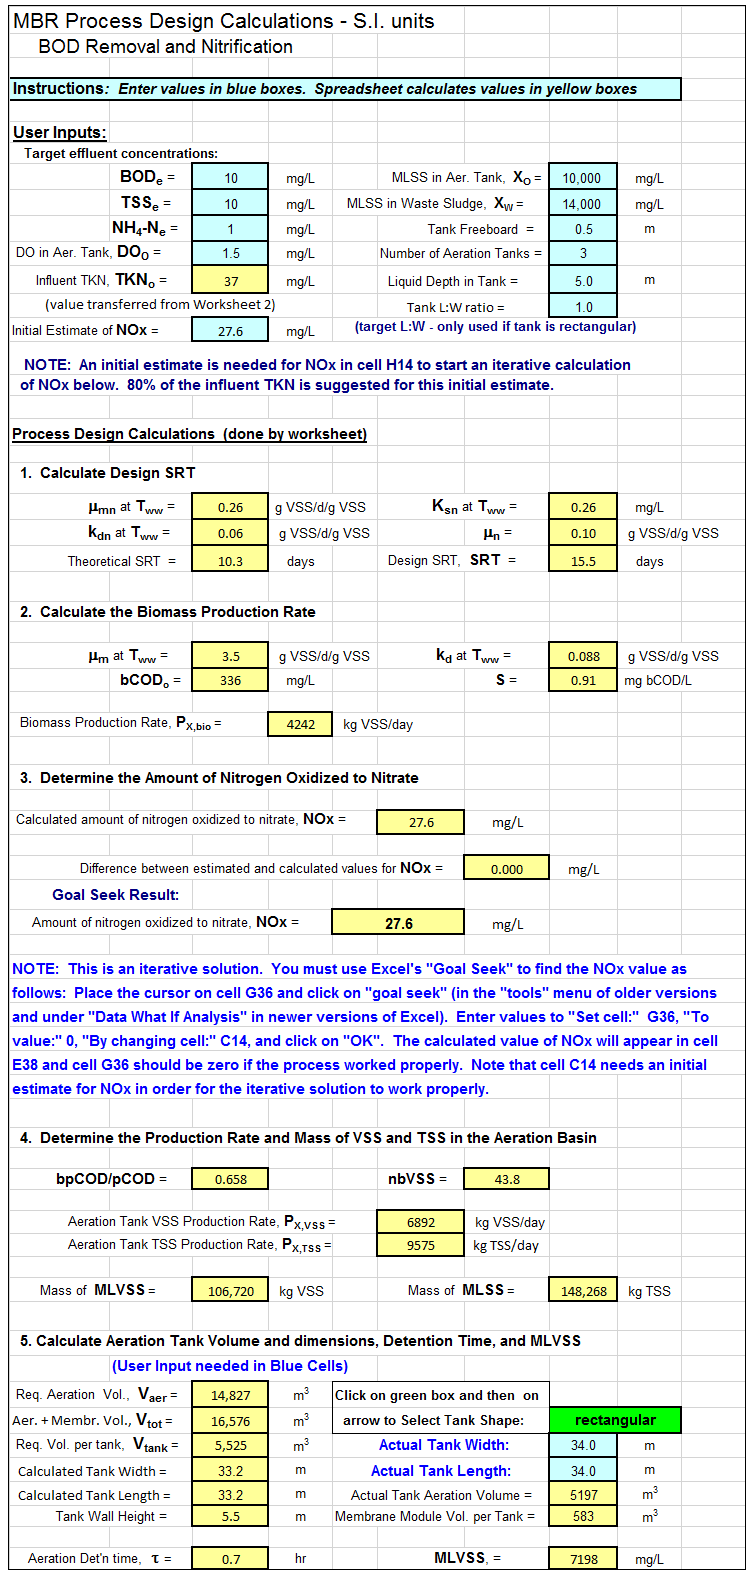 Membrane Bioreactor Wastewater Treatment Calculations Spreadsheet Screenshot